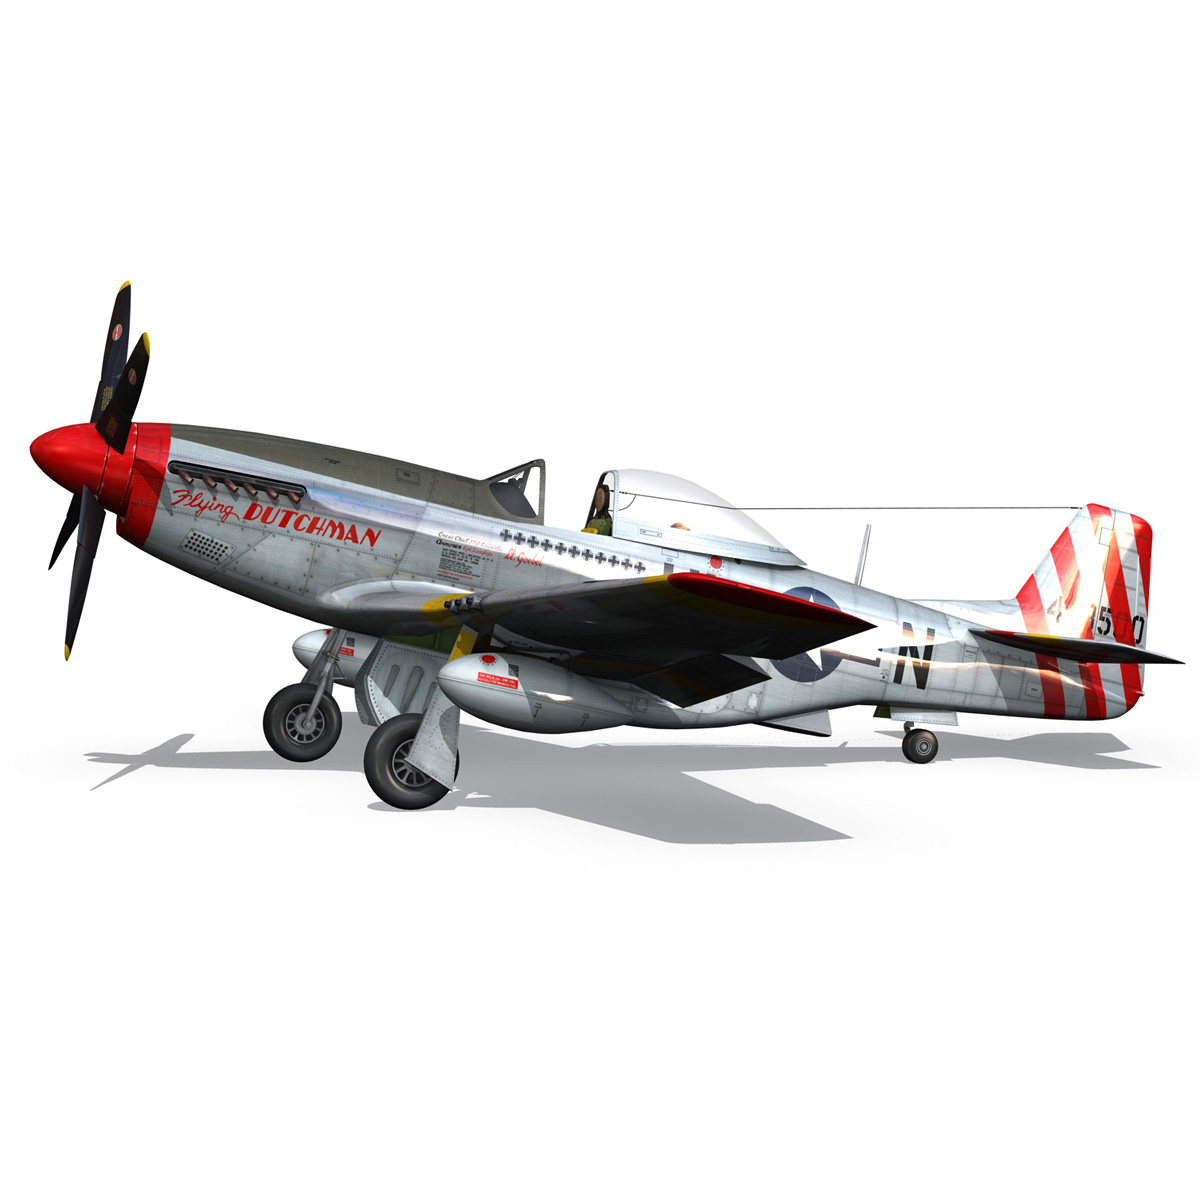 north american p-51d – flying dutchman 3d model fbx lwo lw lws obj c4d 267125